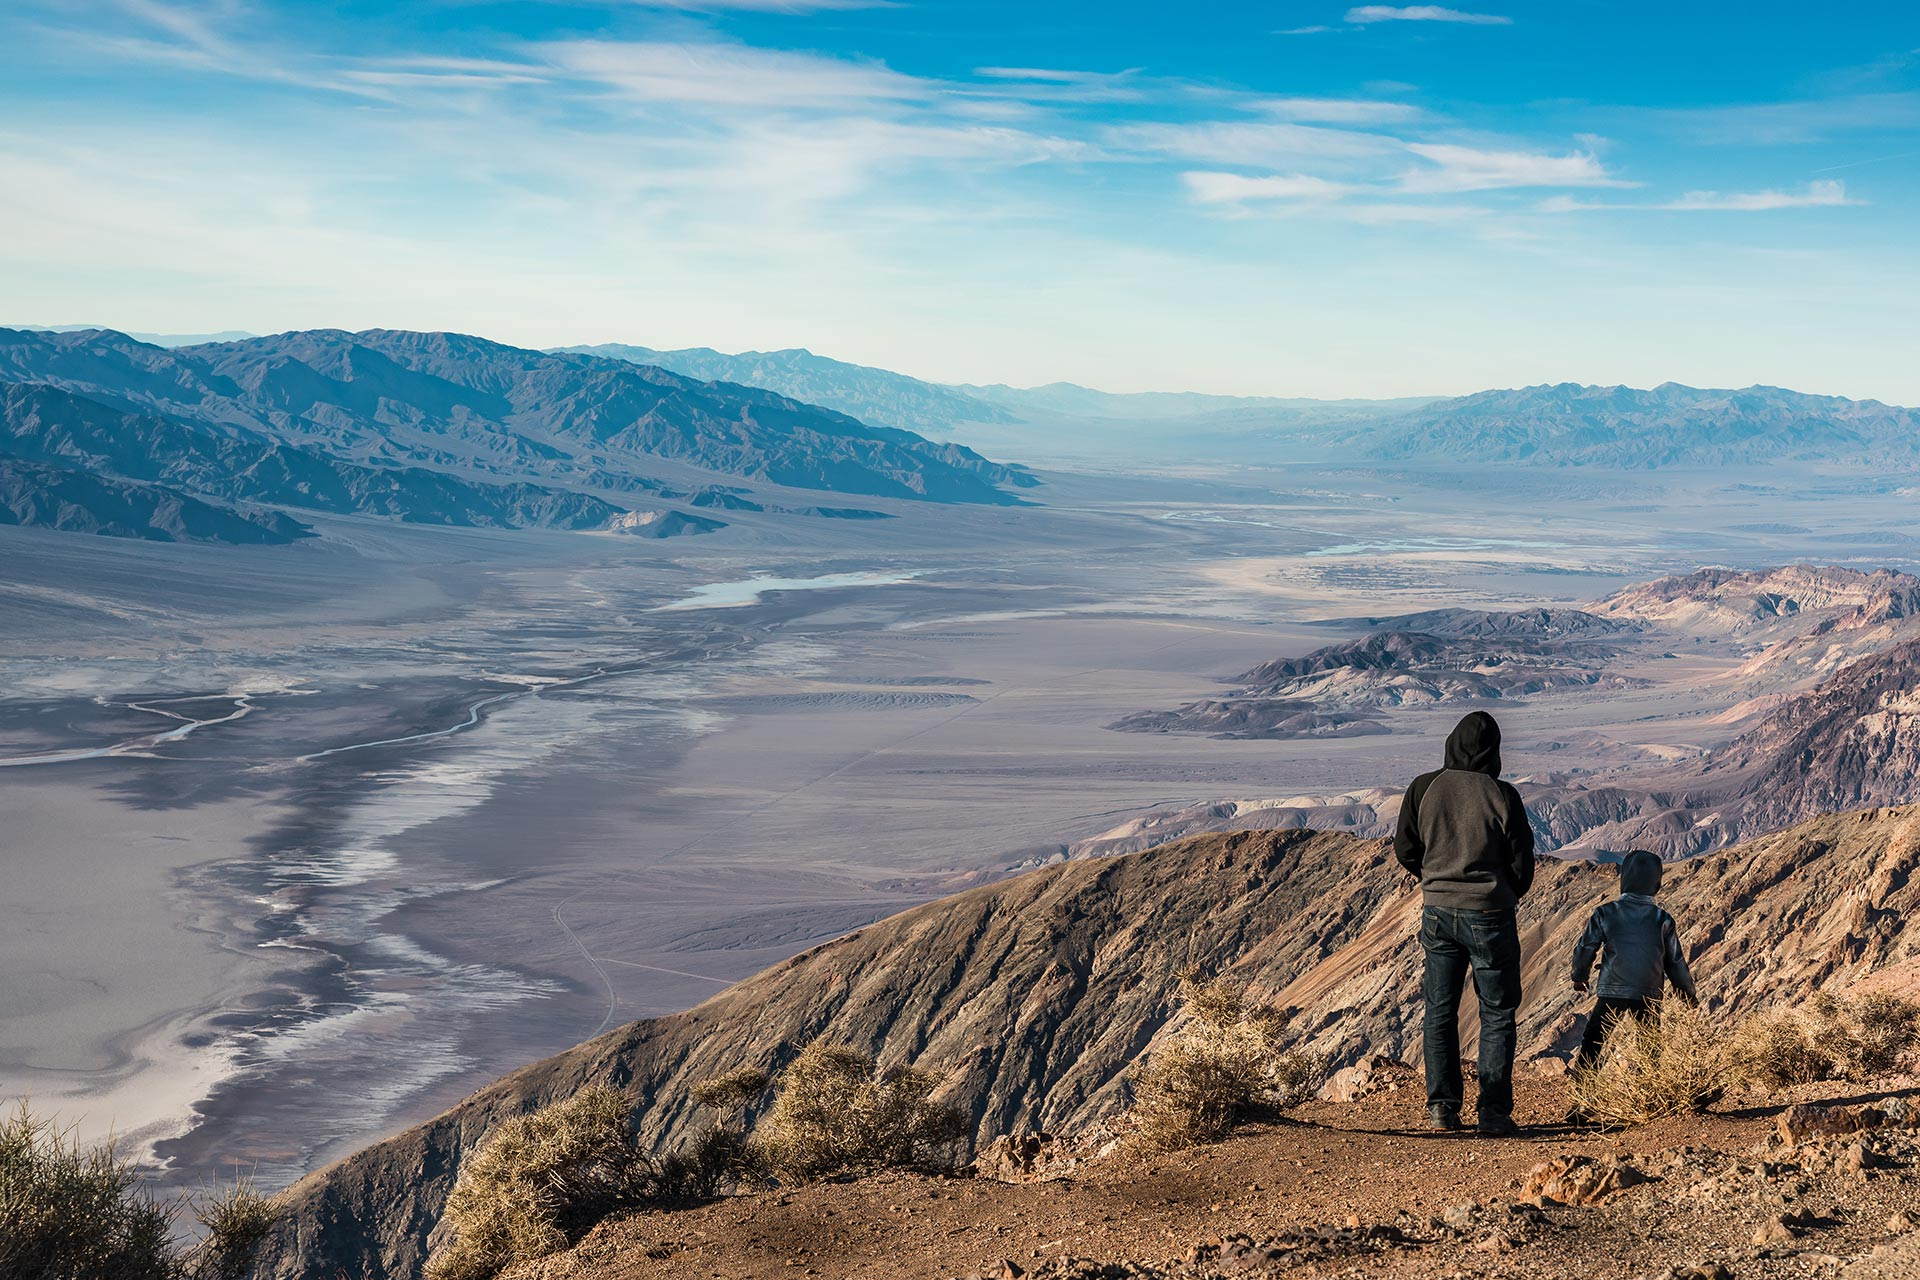 A father and son admiring views of Death Valley National Park from Dante's View in California